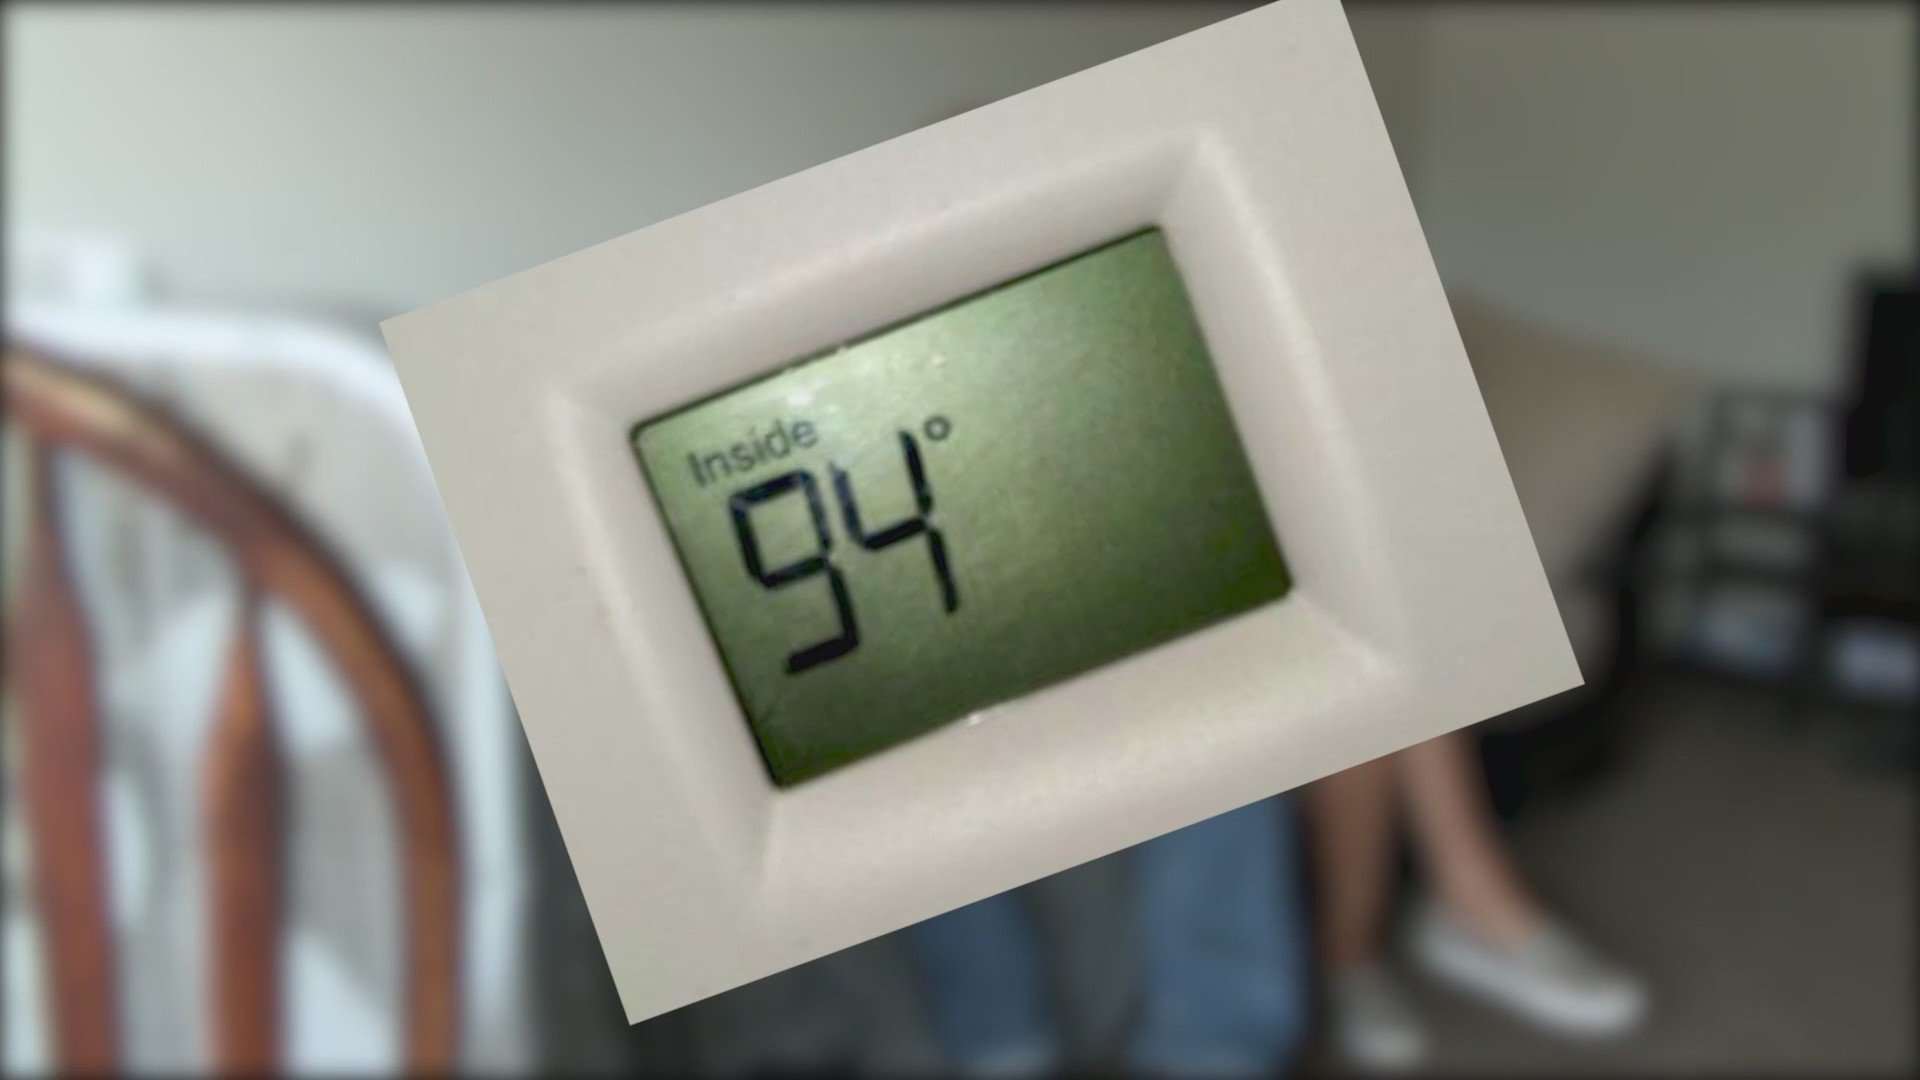 No AC for months, CBS47 seeks solution